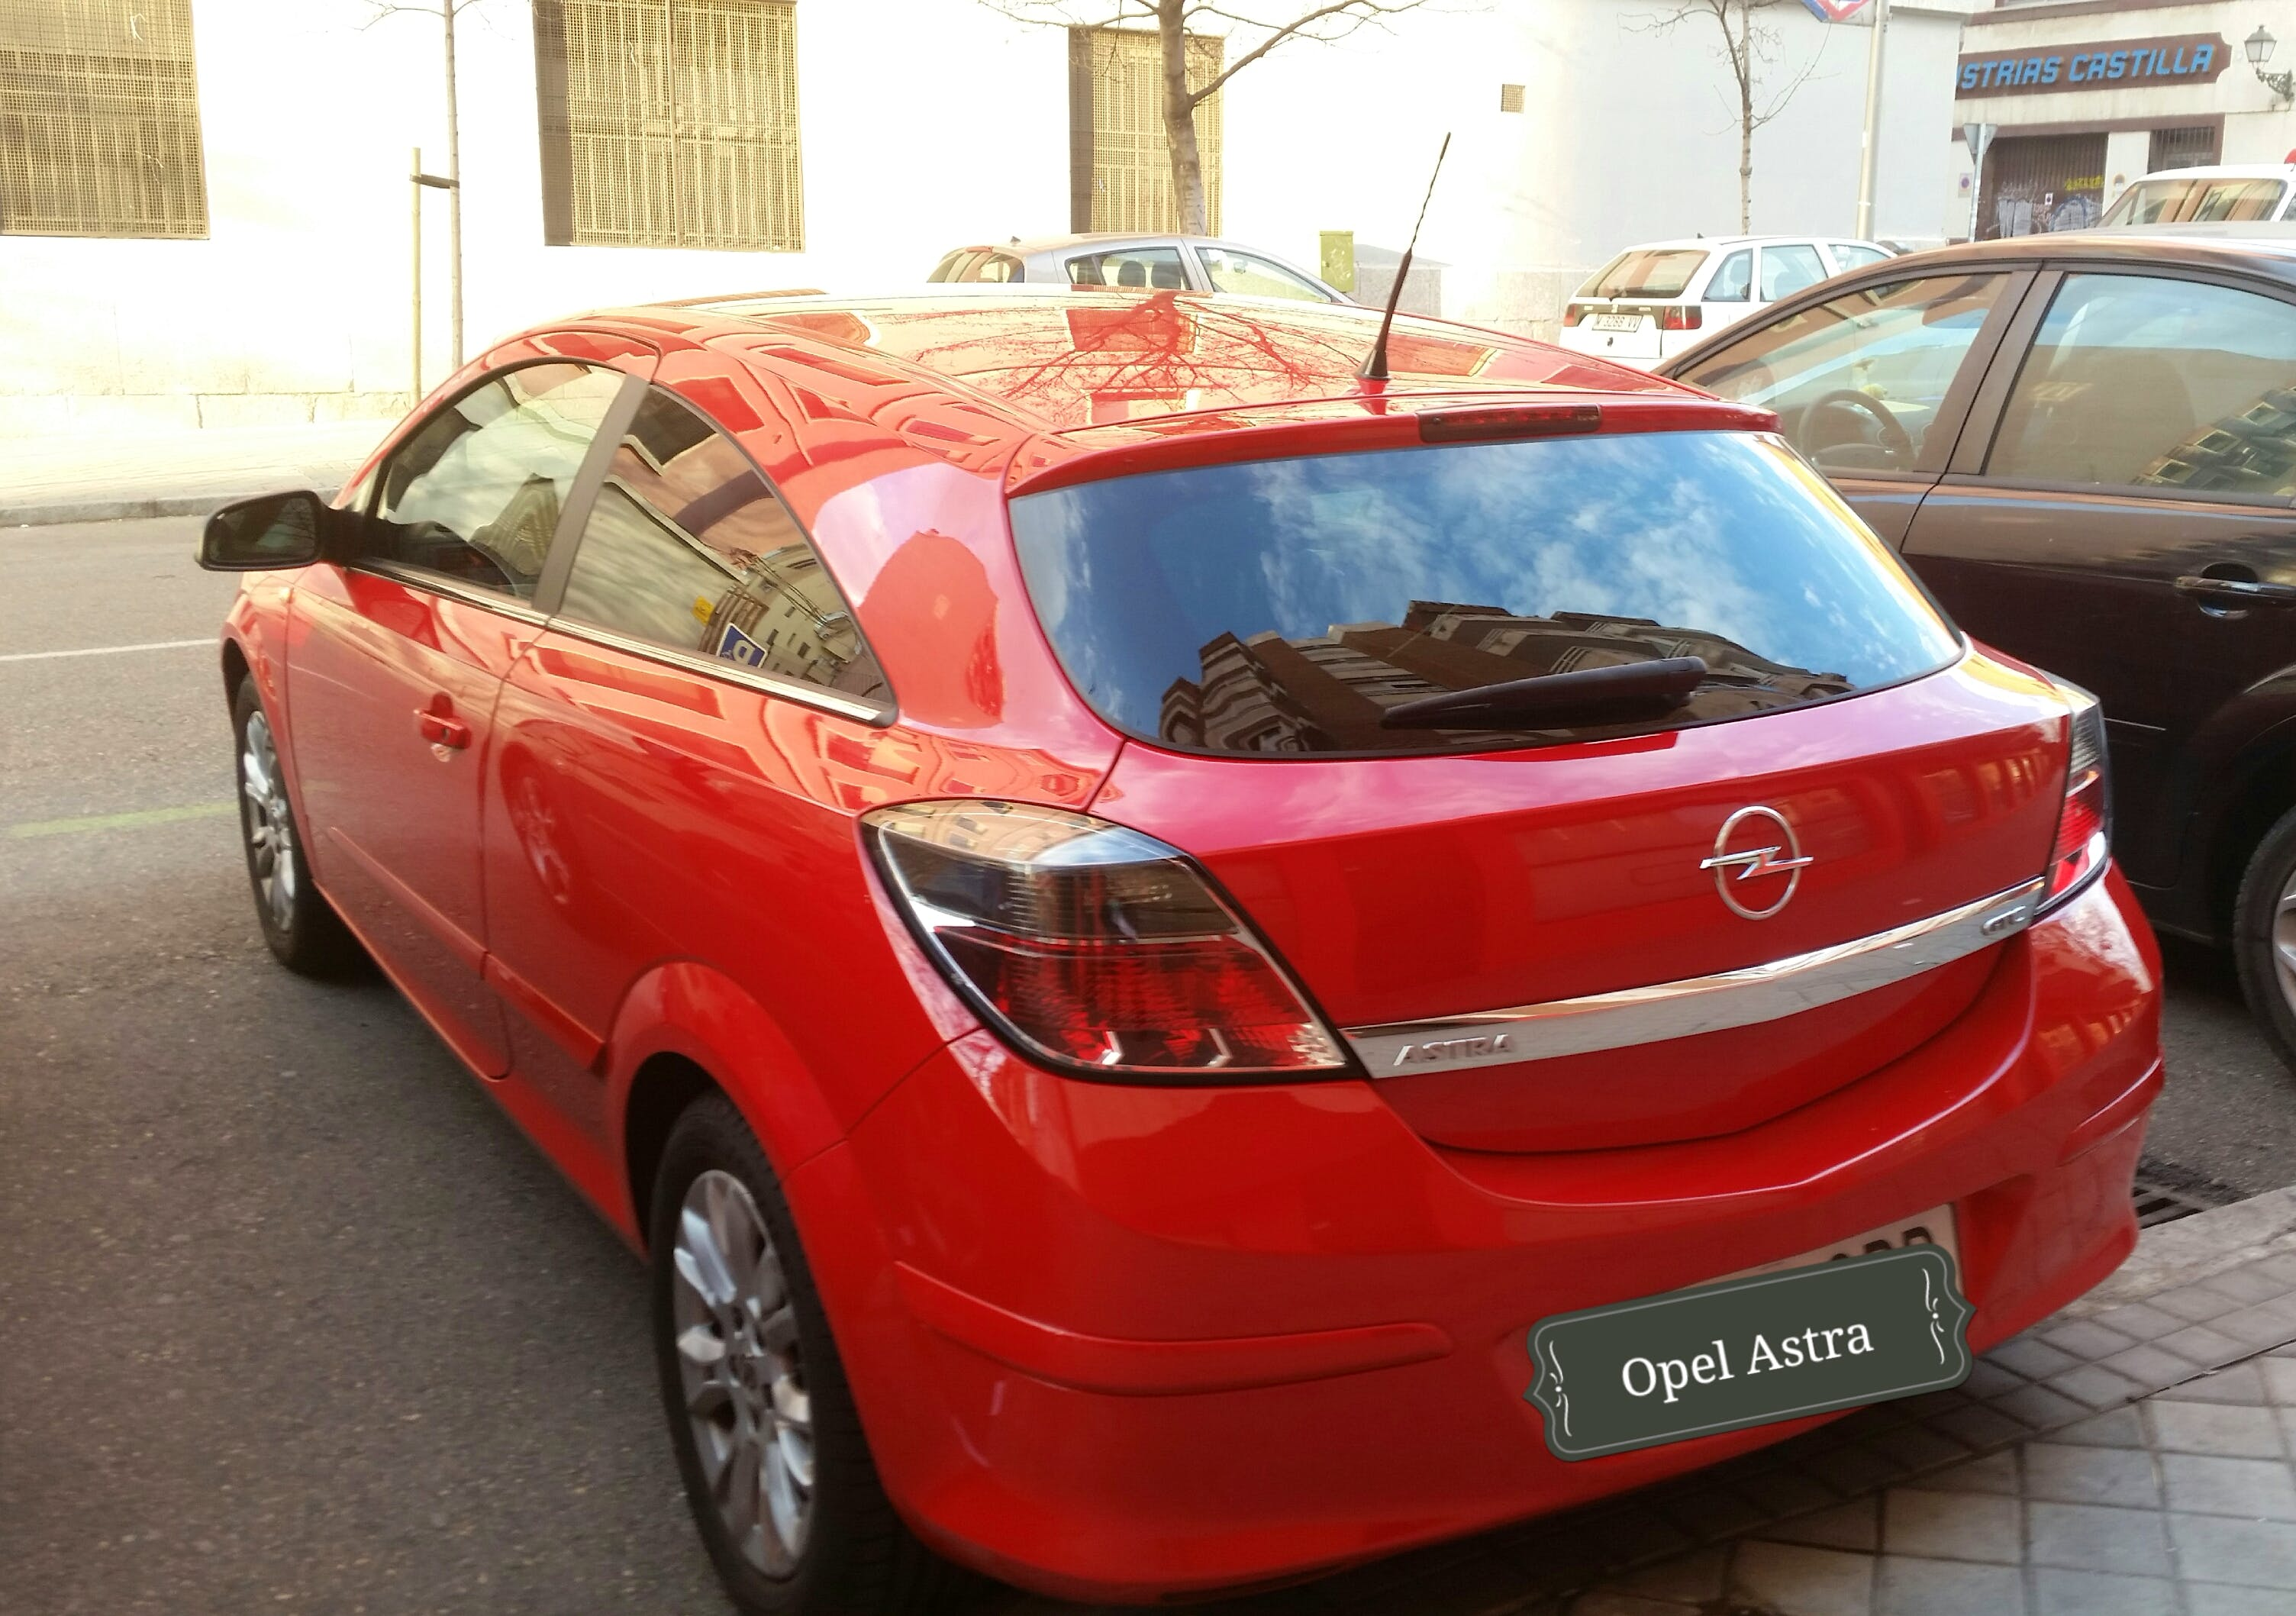 Opel Astra GTC 1.7 CDTI ENJOY con Reproductor de CD